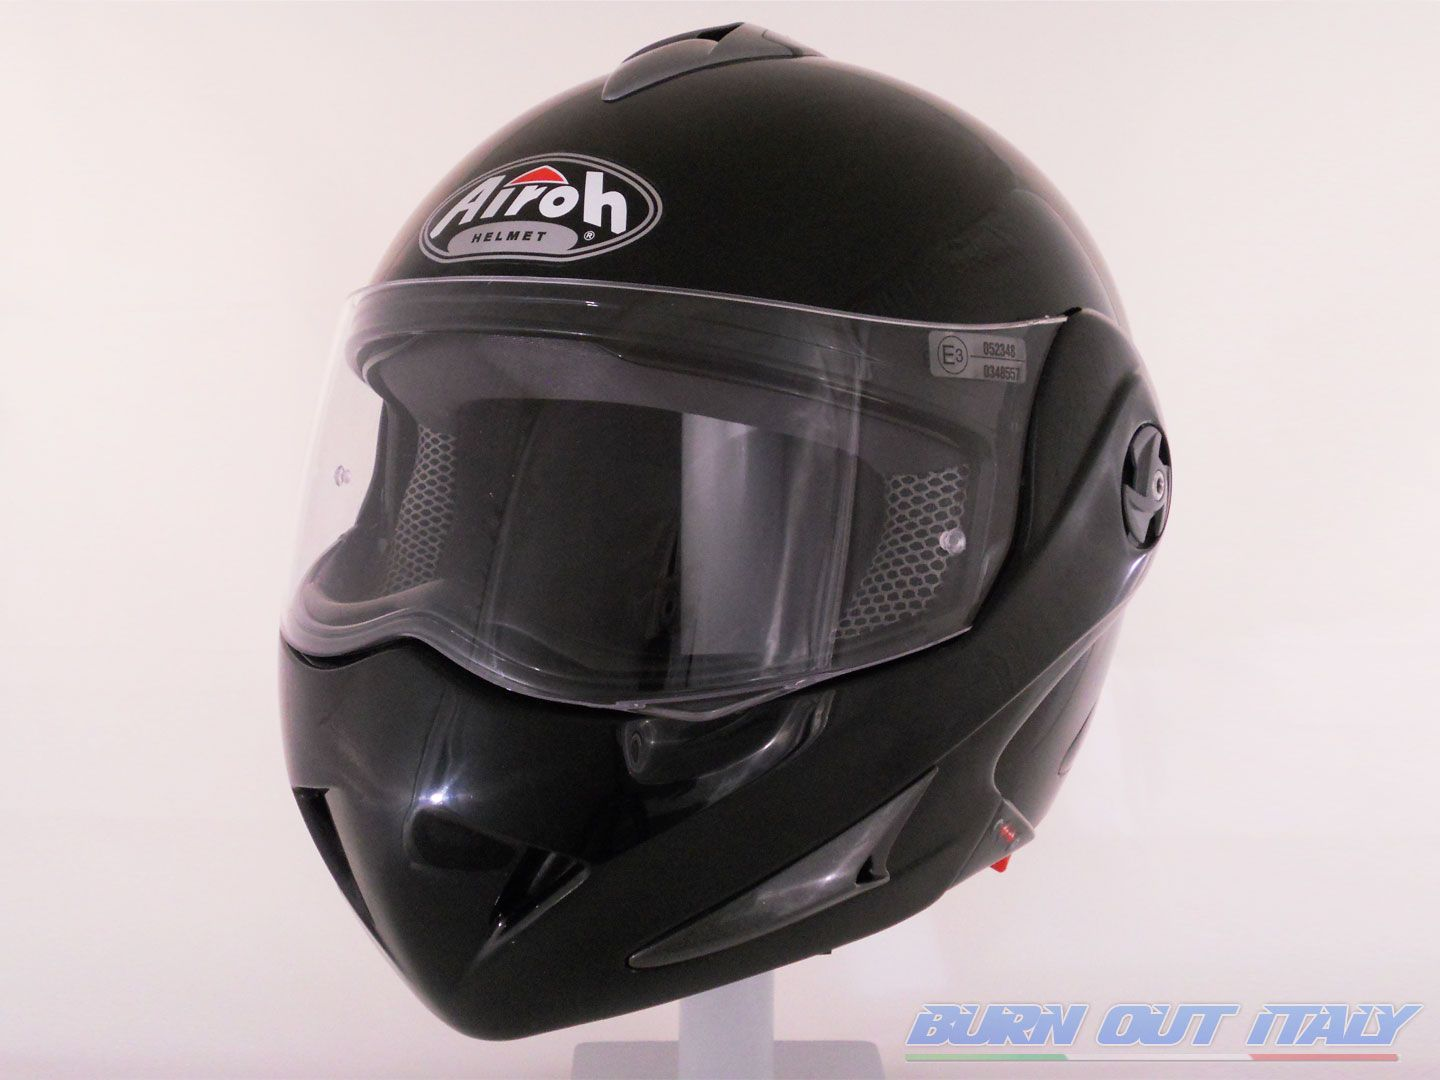 Have airoh air naked color helmet really. agree